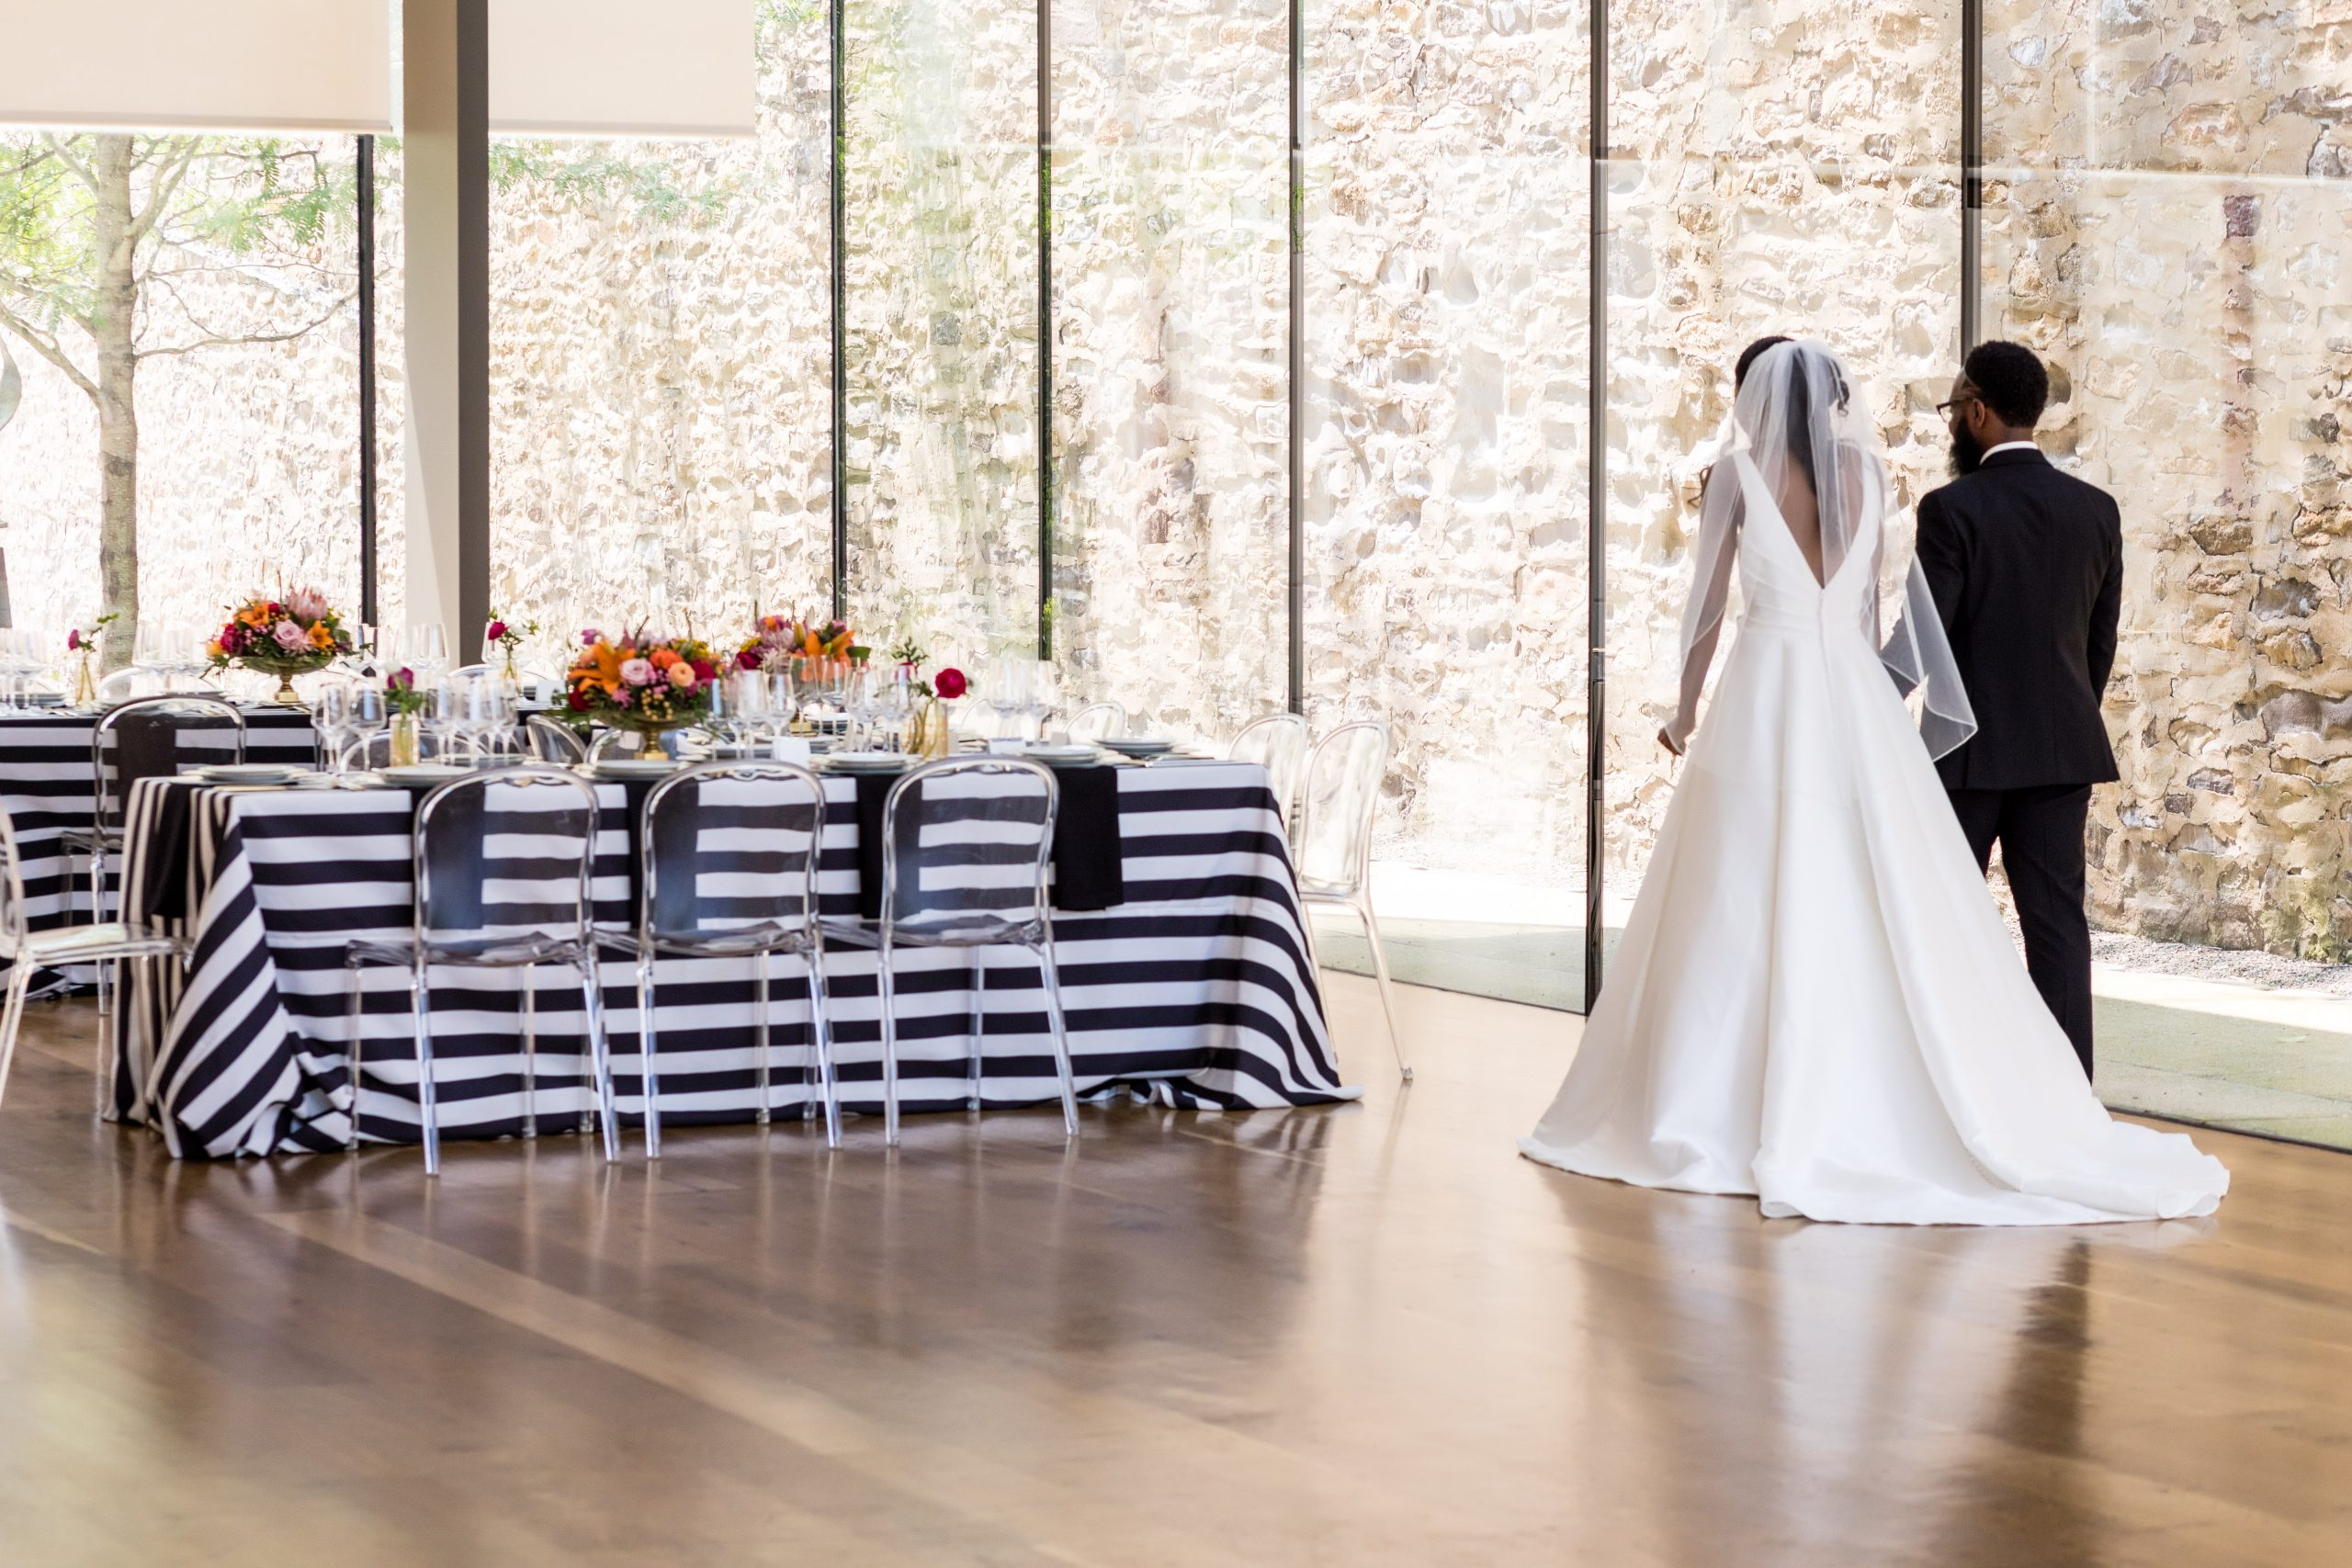 The bride and groom walking into this stunning styled reception at the Michener Museum styled urban contemporary shoot for Ashley Gerrity Photography this past Summer. Featured on Dream Weddings.